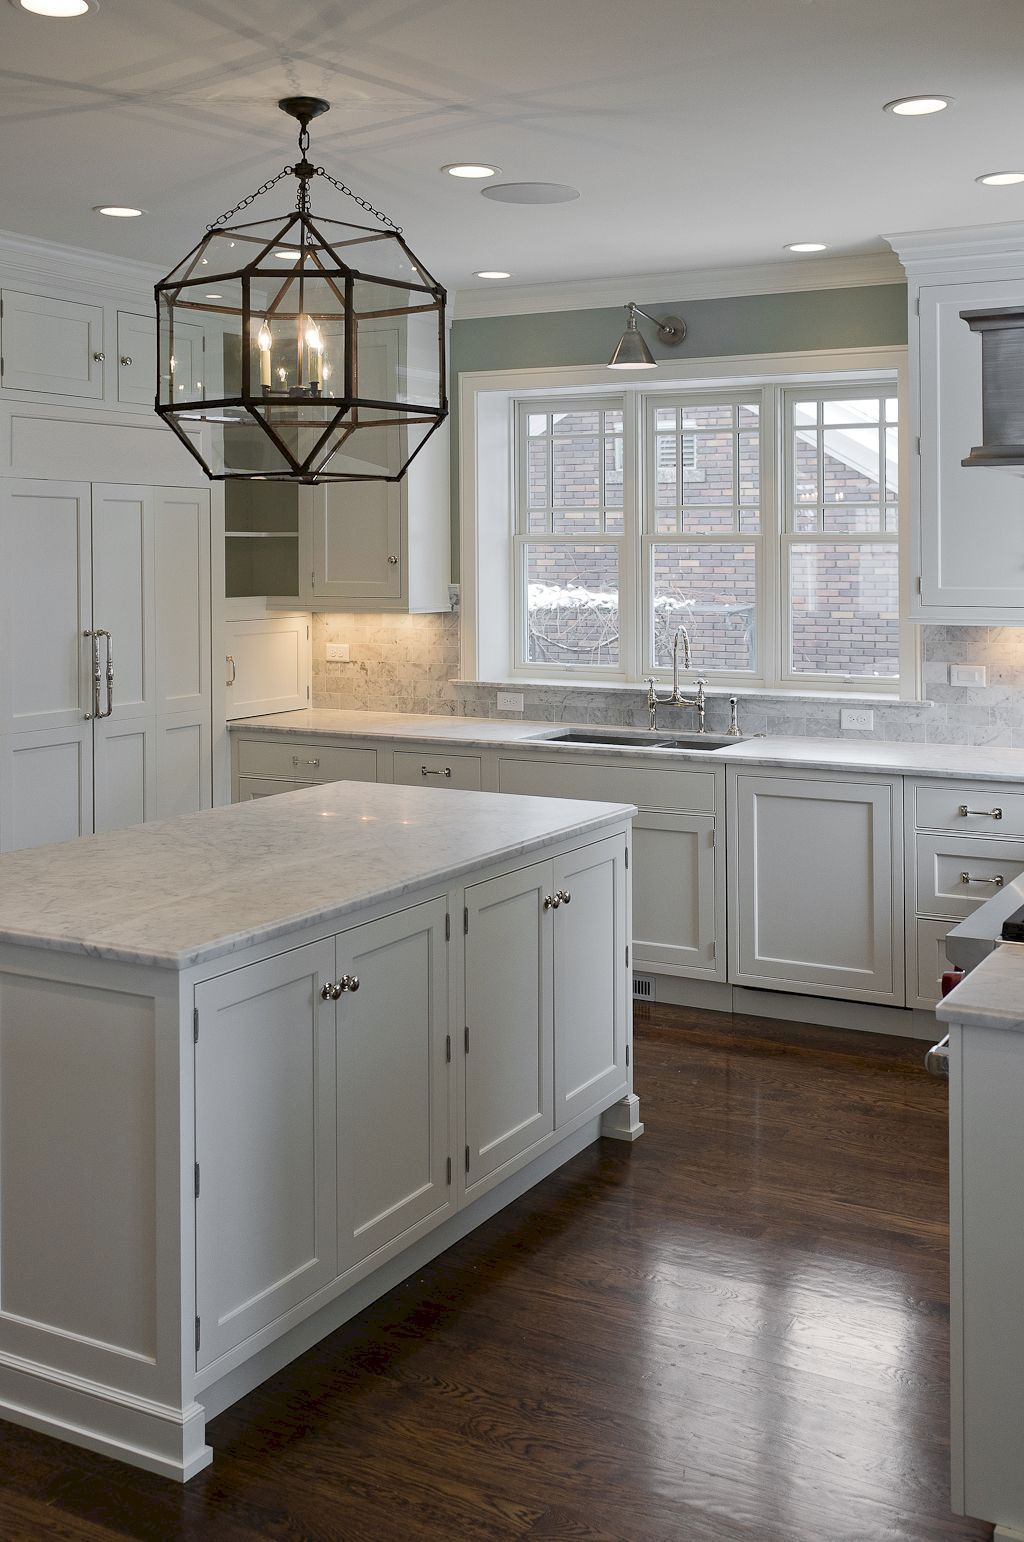 white kitchen cabinet design ideas 71 with images wood floor kitchen kitchen cabinets on kitchen cabinets not white id=22781